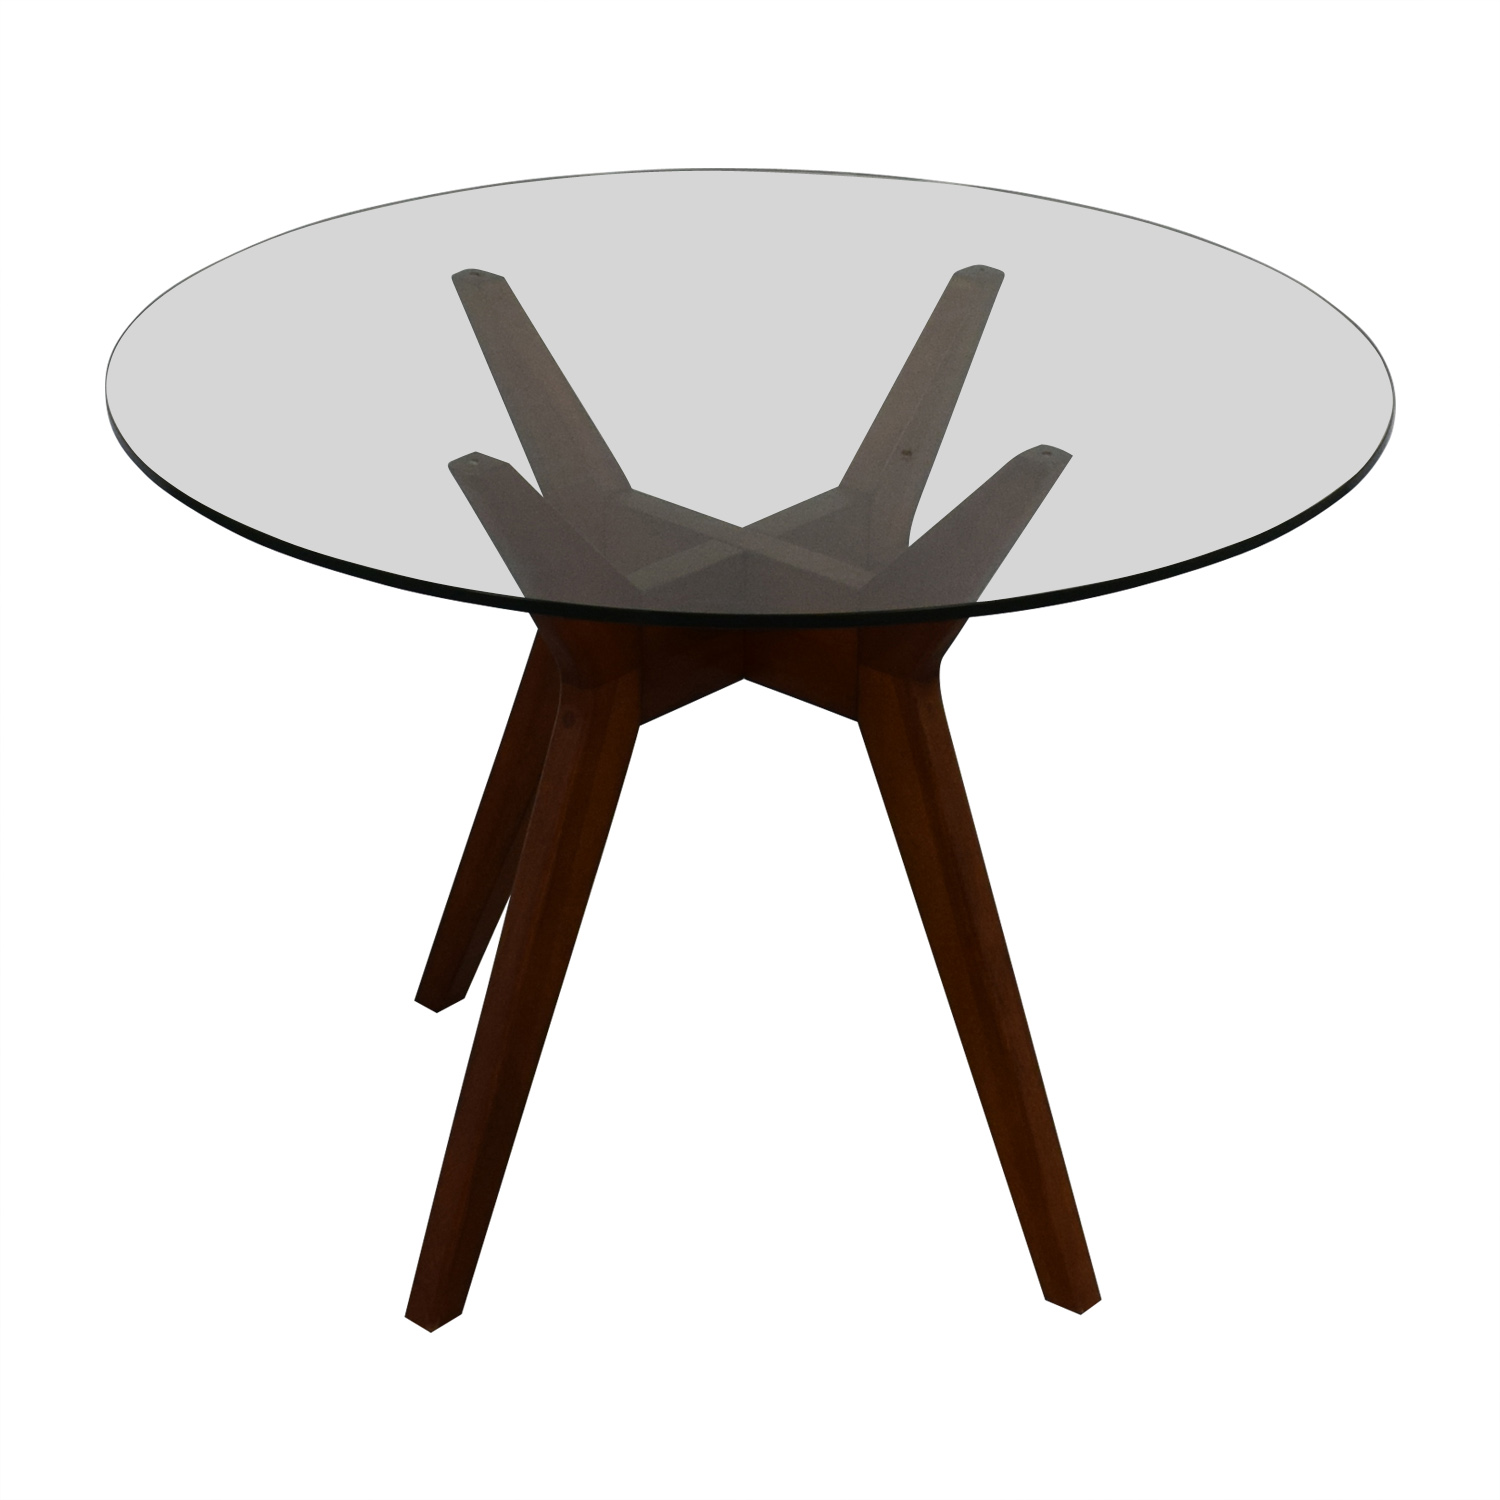 West Elm West Elm Jensen Round Glass Dining Table second hand